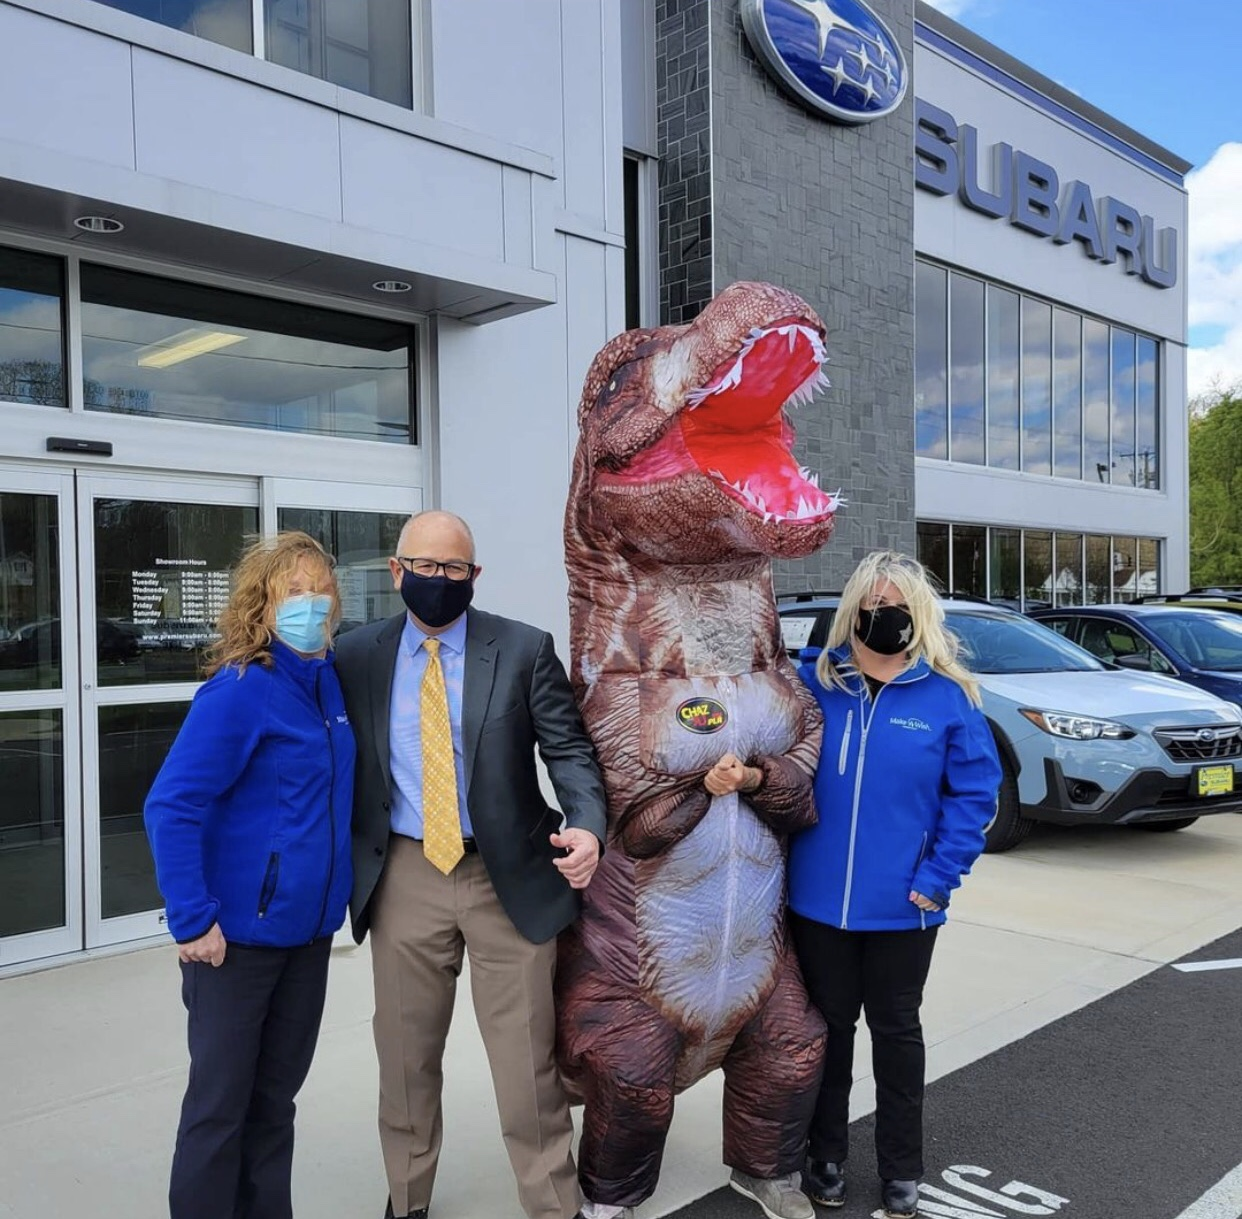 PODCAST – Thursday, April 22: AJ's Branford Make-A-Wish Godzilla Walk; Our Gifts For The Queen's Birthday; Strangest Things Found In Noses